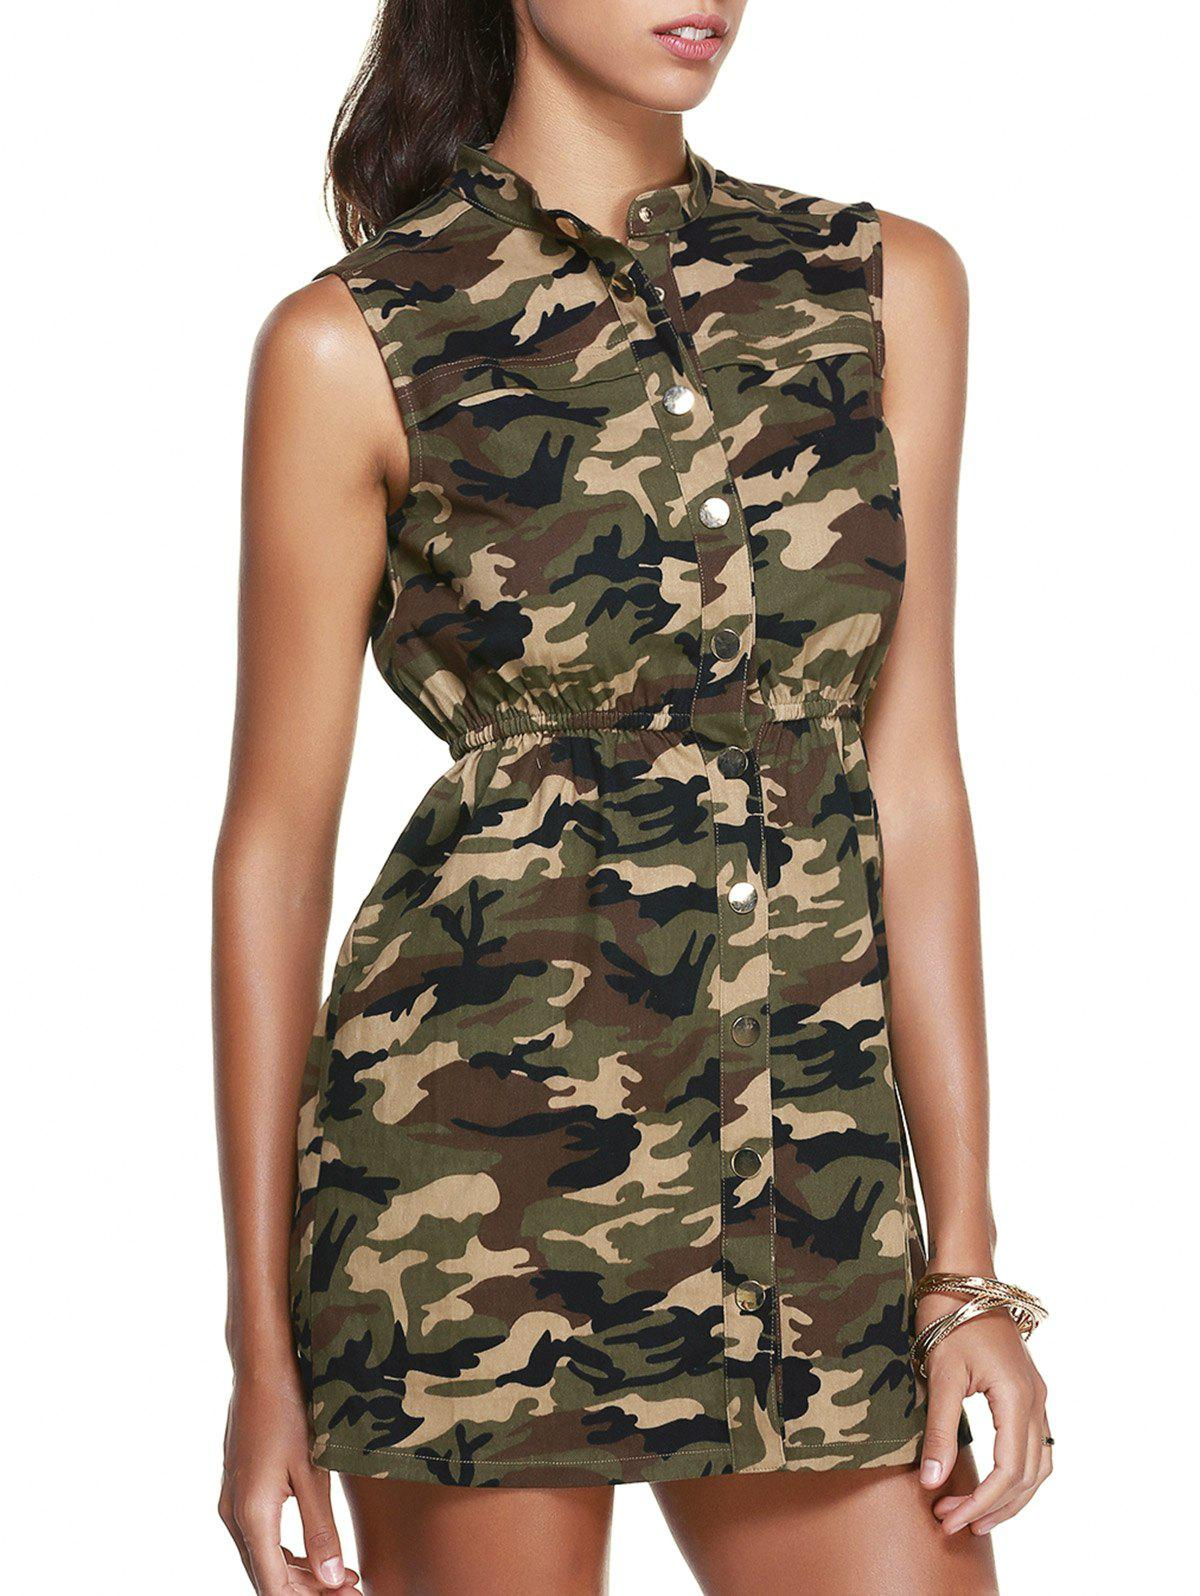 New Stand Collar Sleeveless Camo Shirt Dress